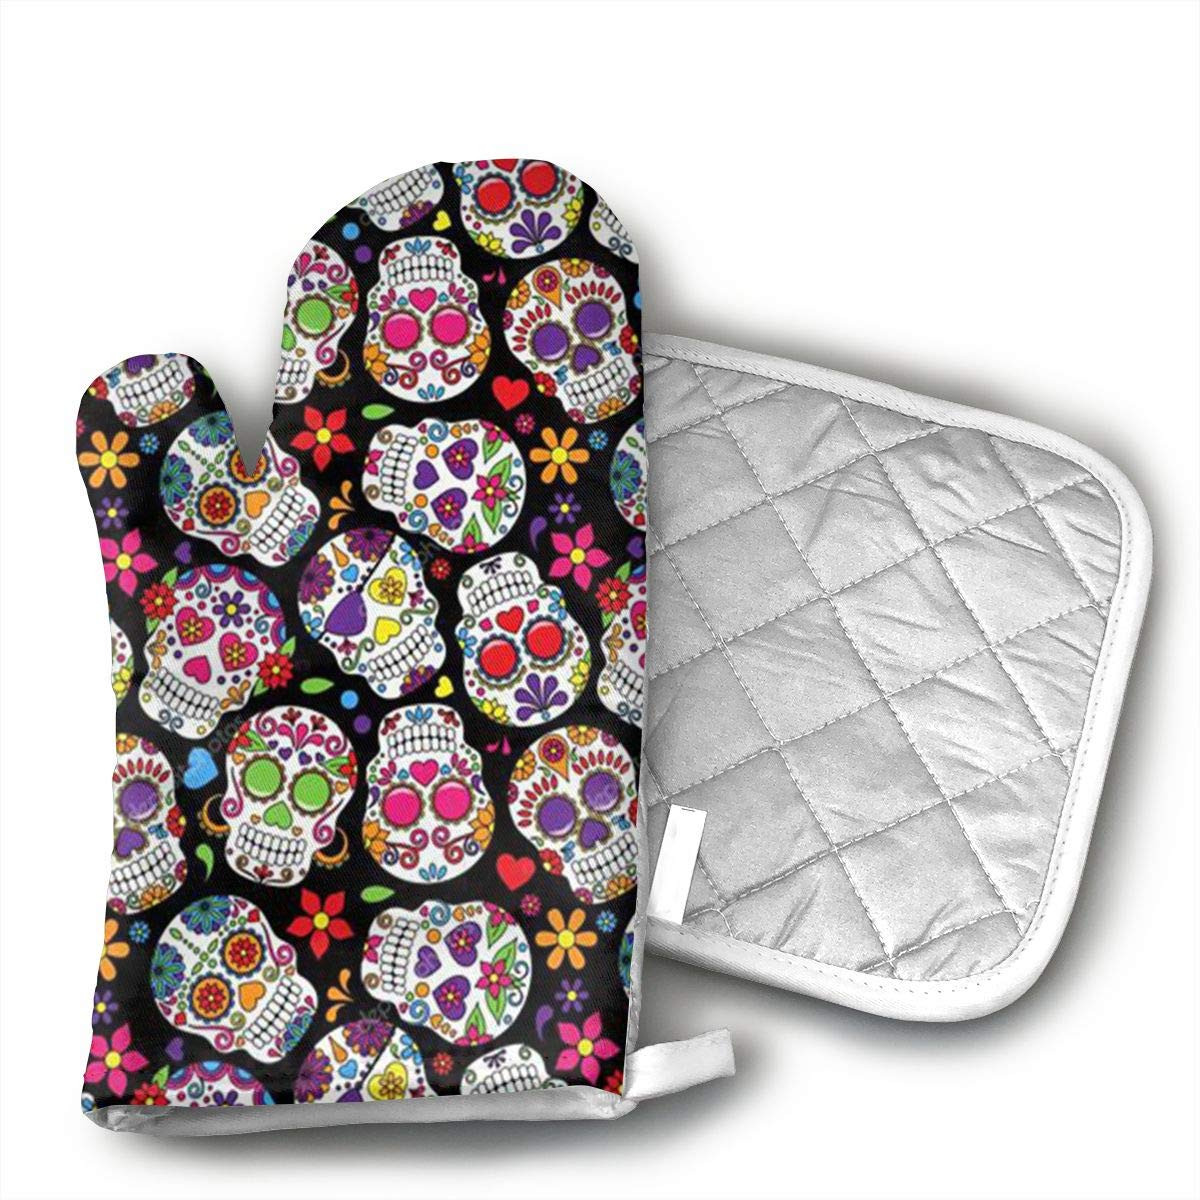 Ubnz17X Dead Sugar Skulls Oven Mitts and Pot Holders for Kitchen Set with Cotton Non-Slip Grip,Heat Resistant